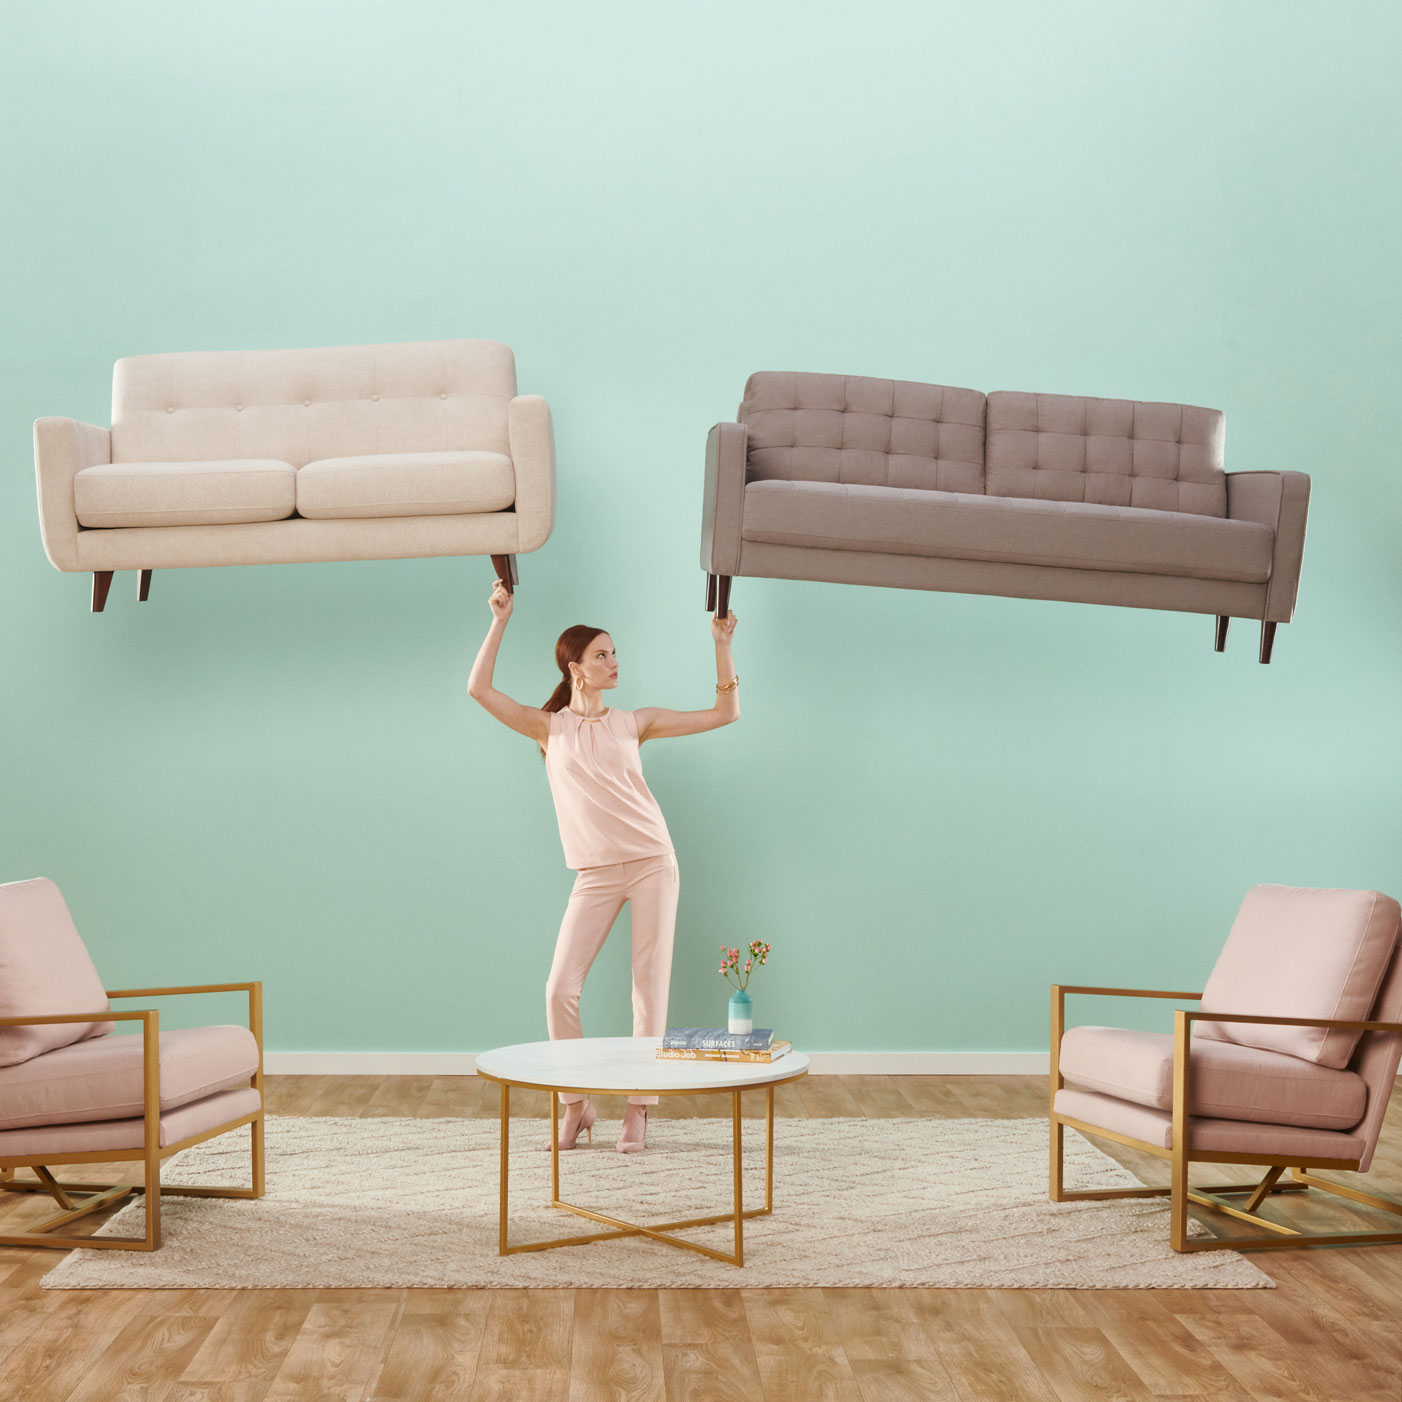 Showroom_PlayWithYourFurniture_Couches_TileCrop_0017